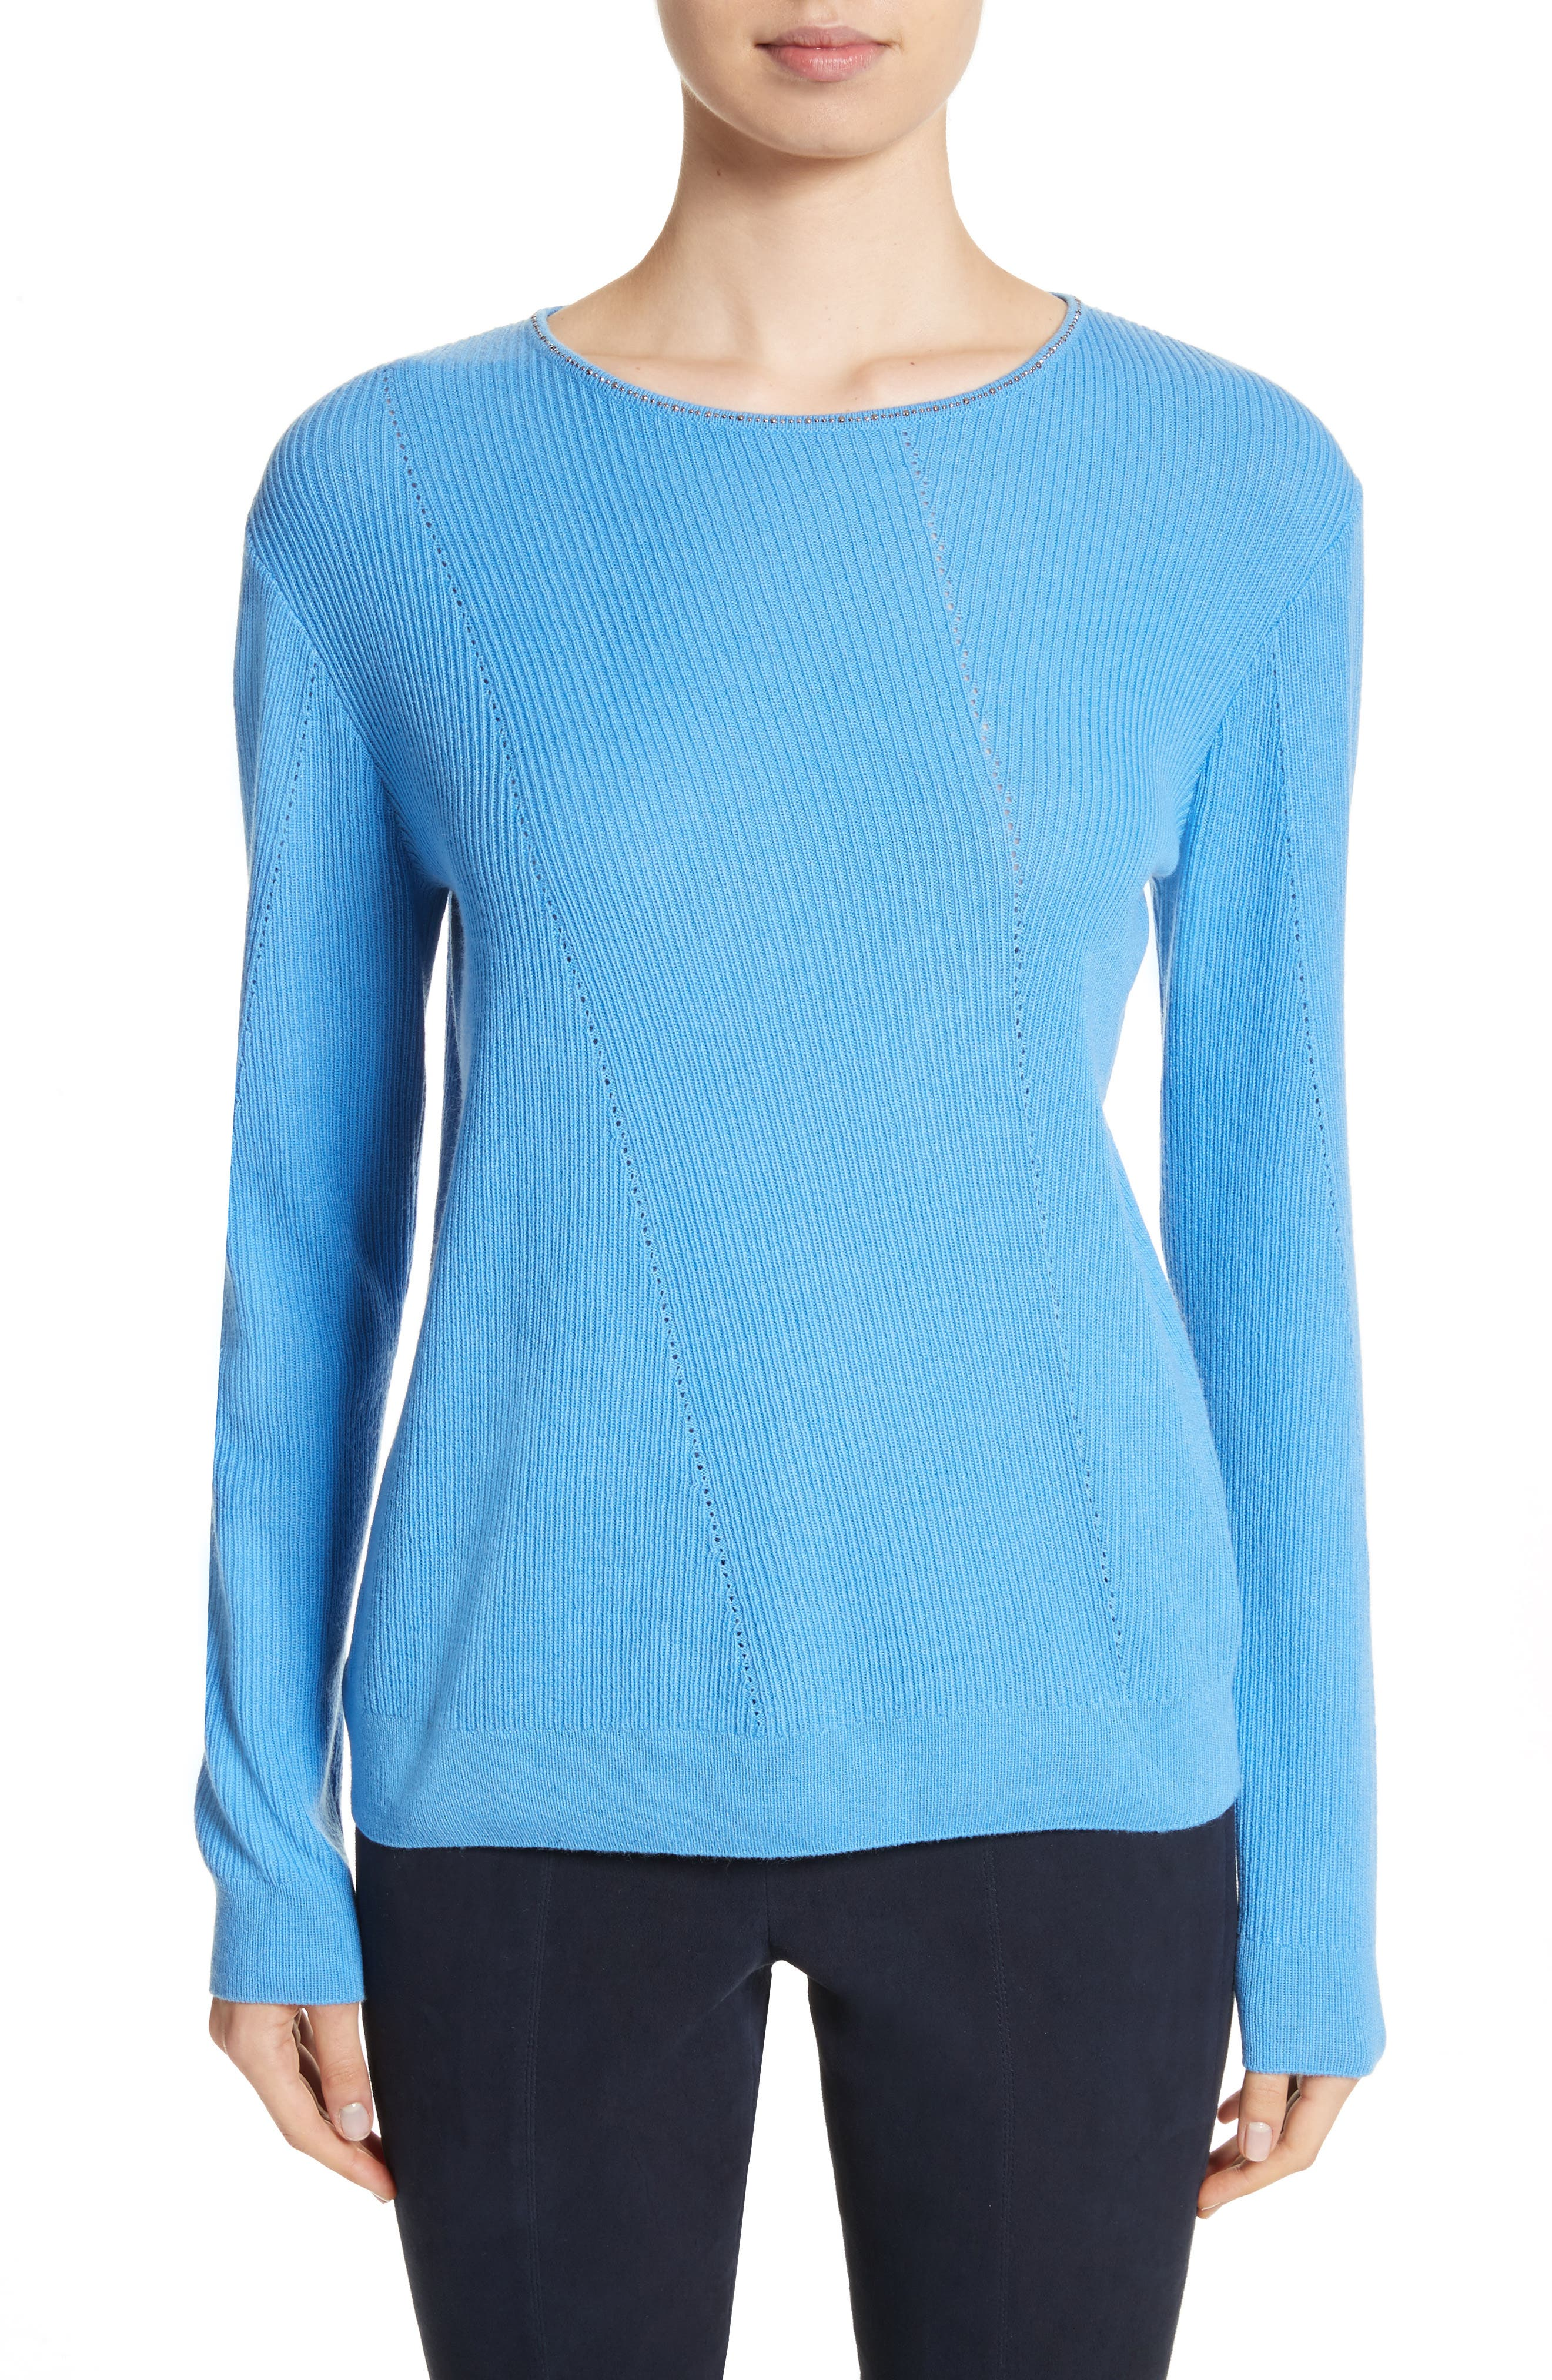 Main Image - St. John Collection Cashmere Sweater